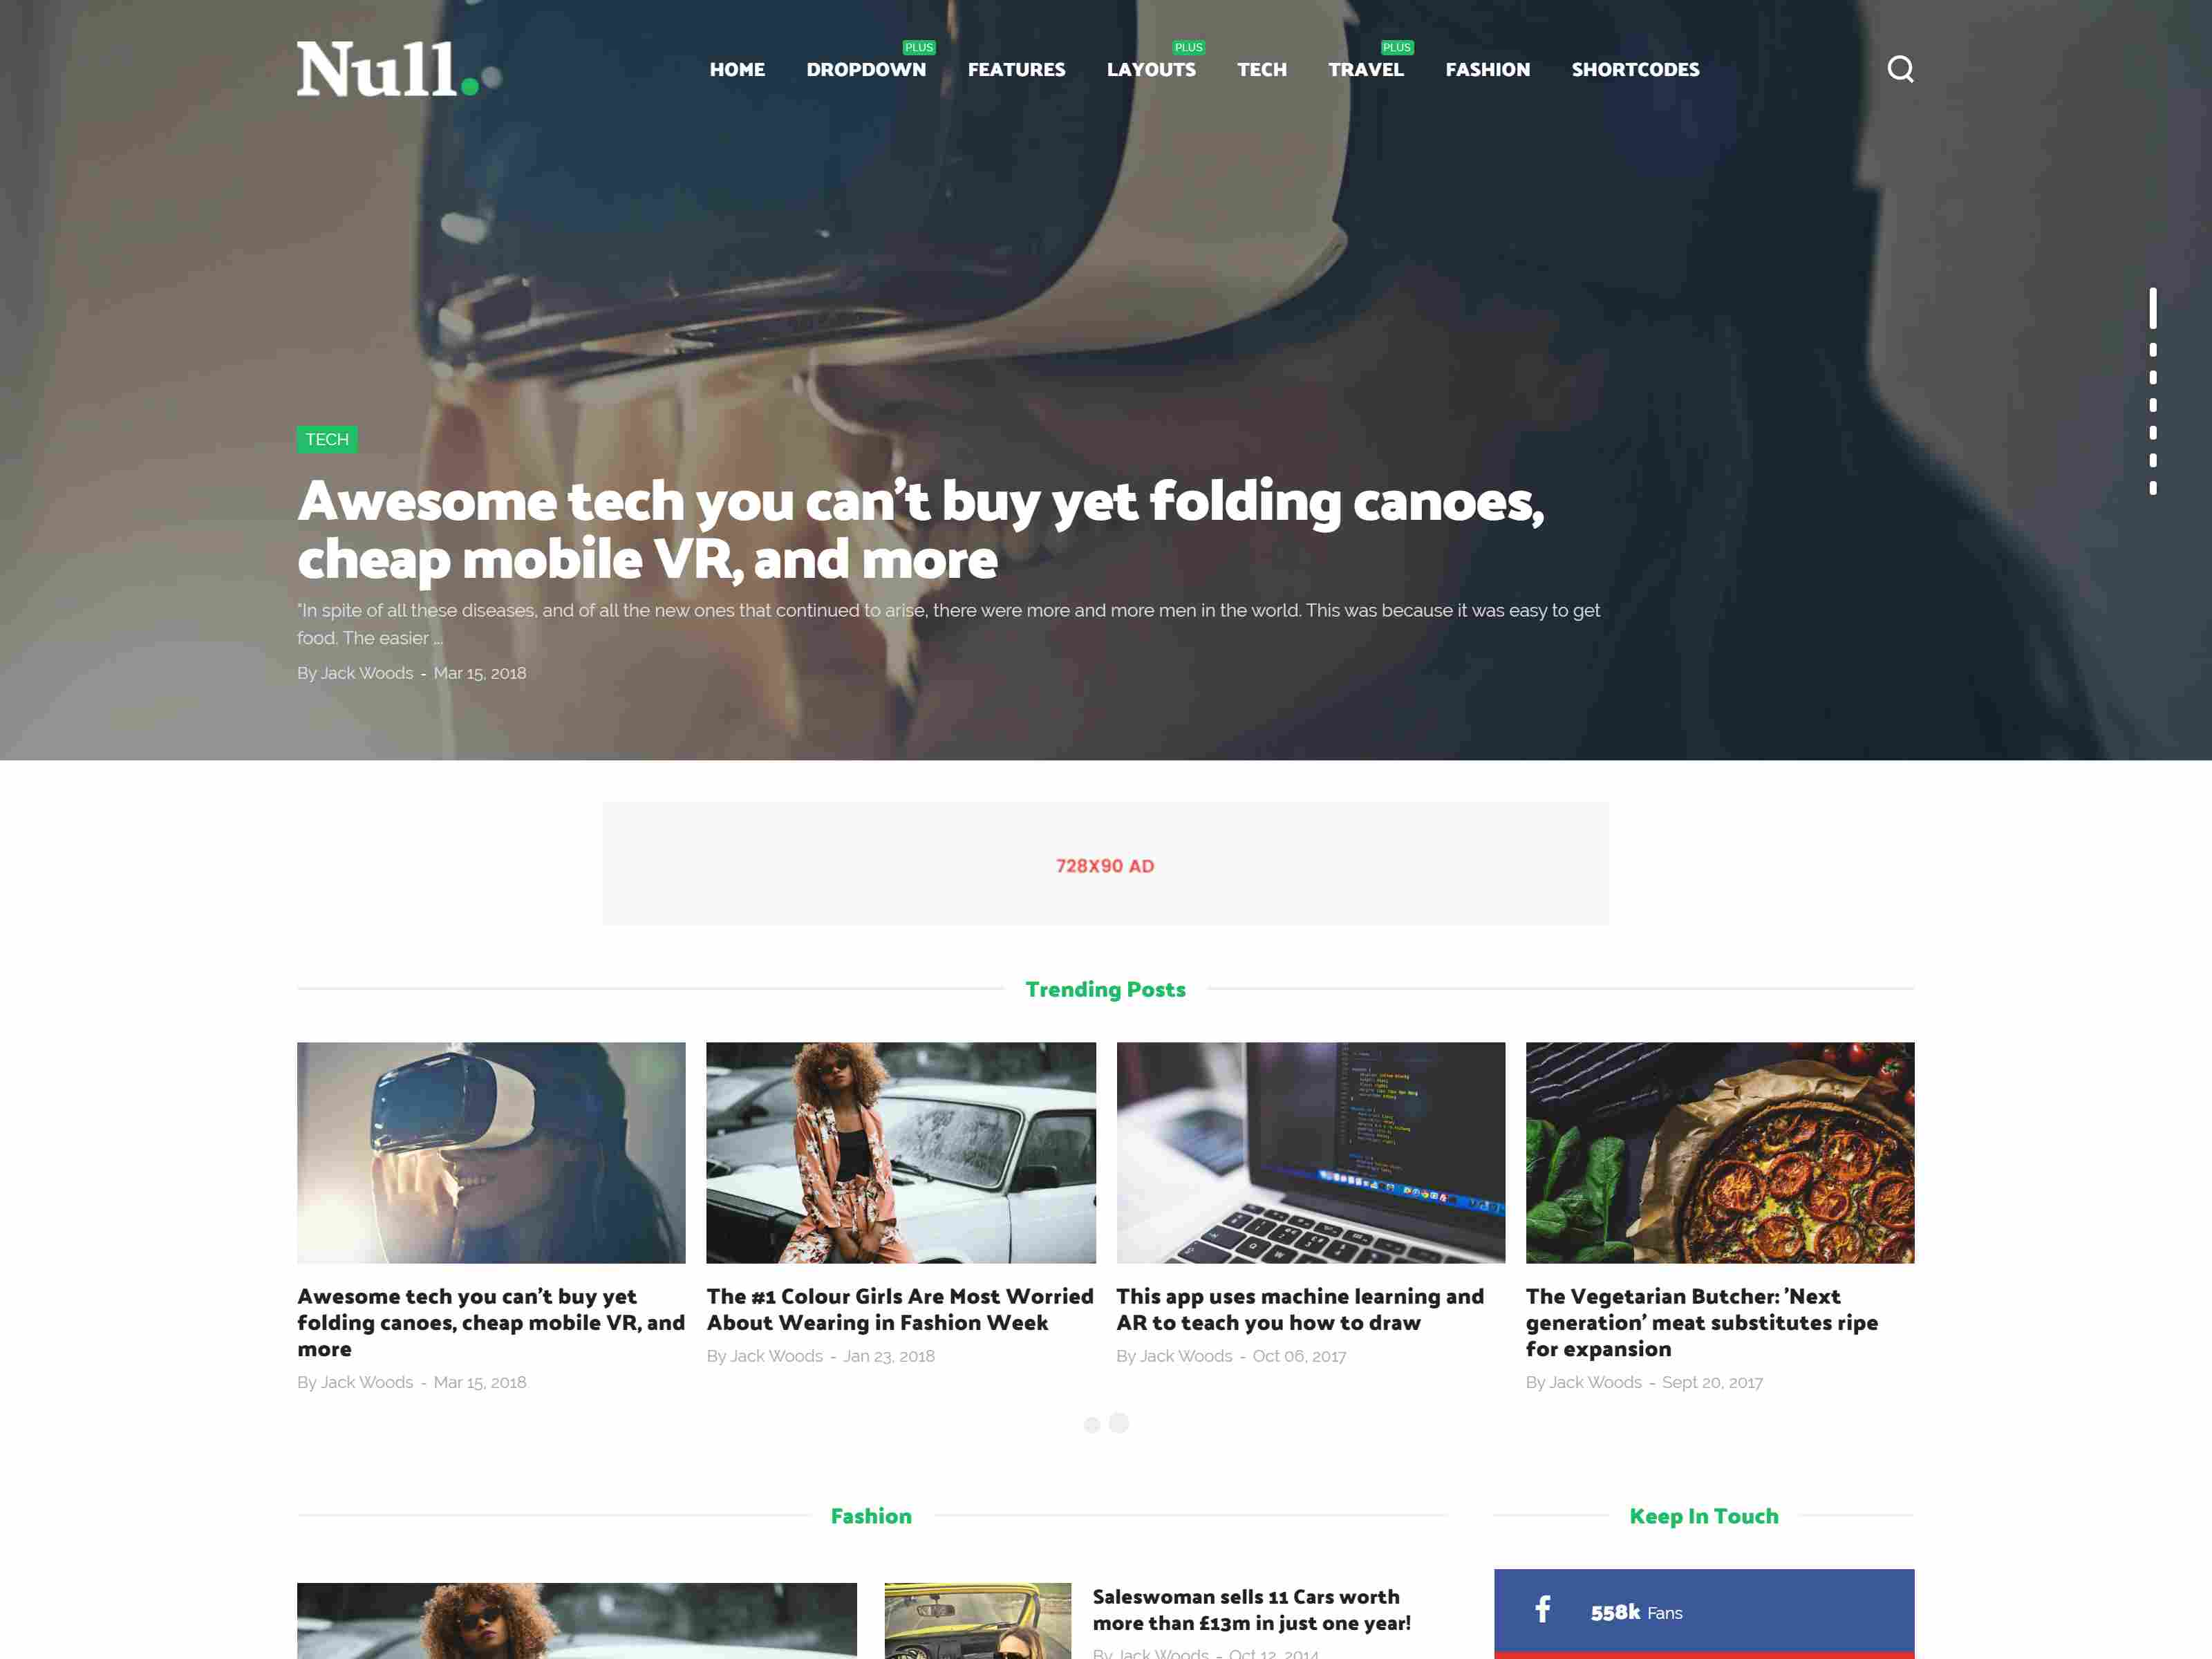 Null - News & Editorial Magazine Blogger Theme